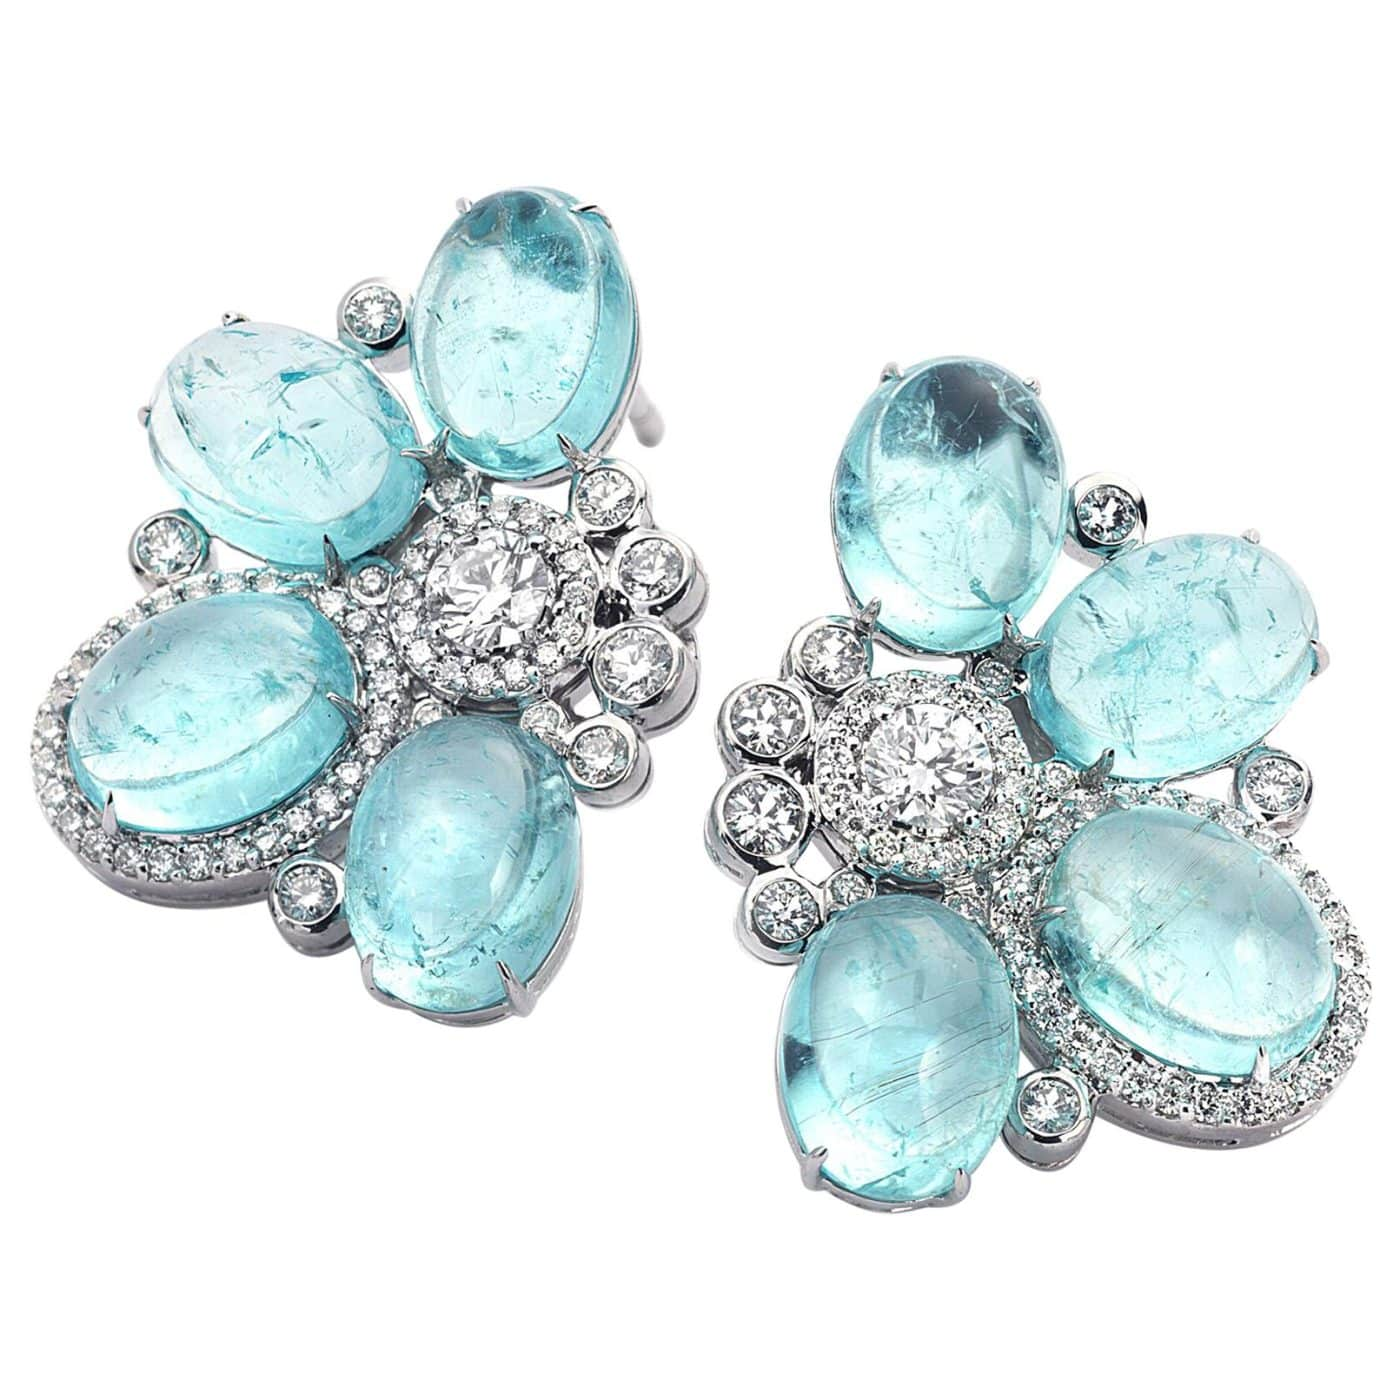 Paraíba tourmaline and diamond earrings designed by Coomi Bhasin